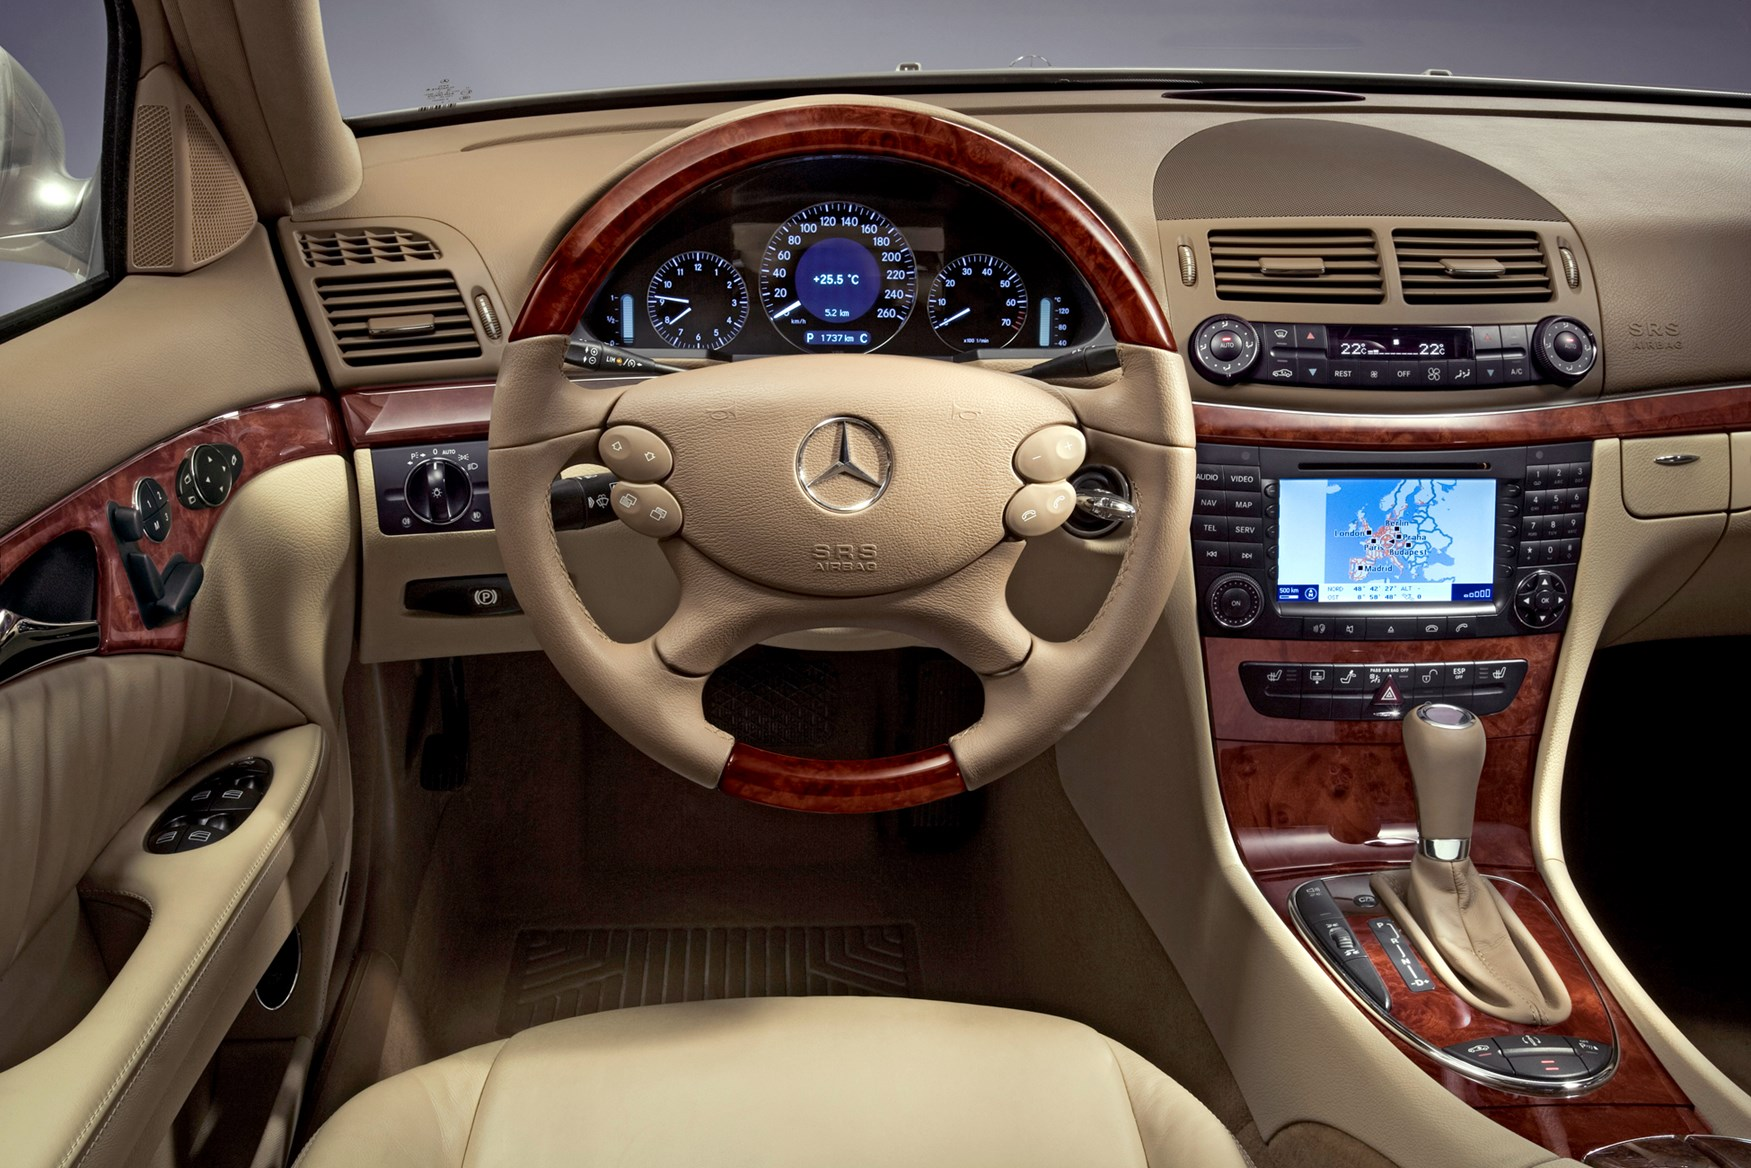 View all images of the mercedes benz e class estate 03 08